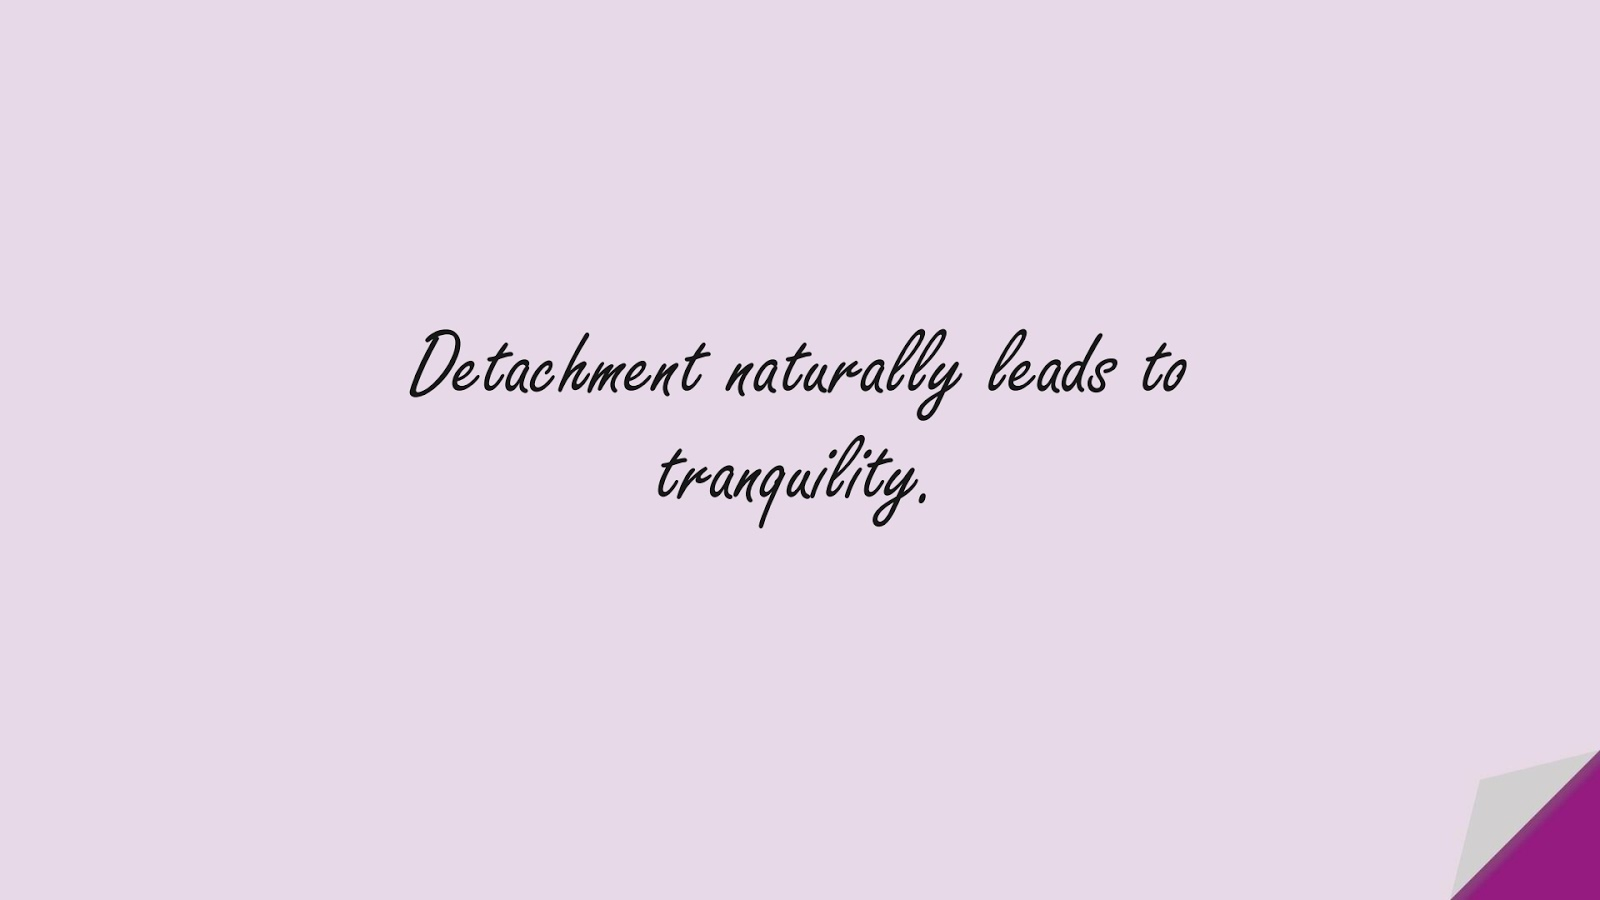 Detachment naturally leads to tranquility.FALSE